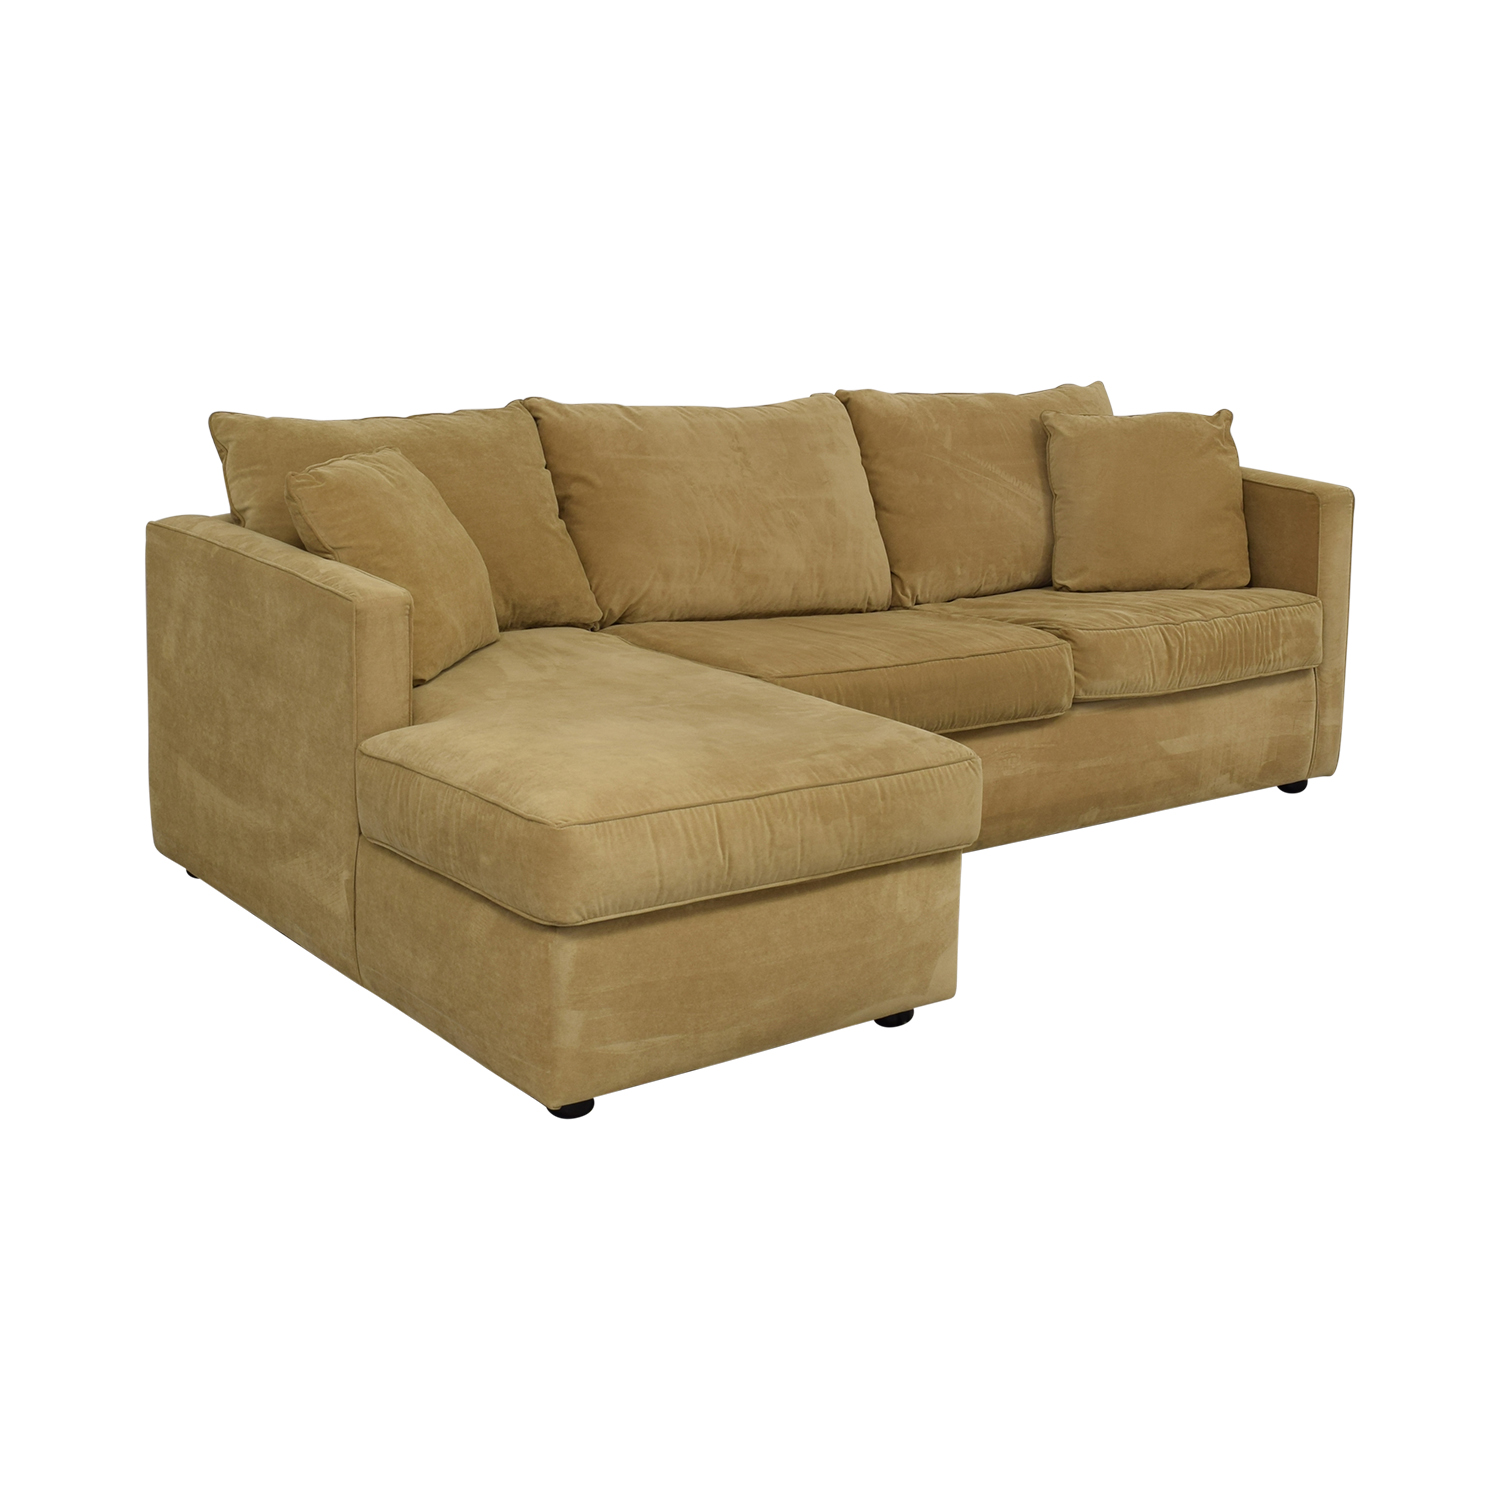 buy Klaussner Klaussner Chaise Sectional Sleeper Sofa online